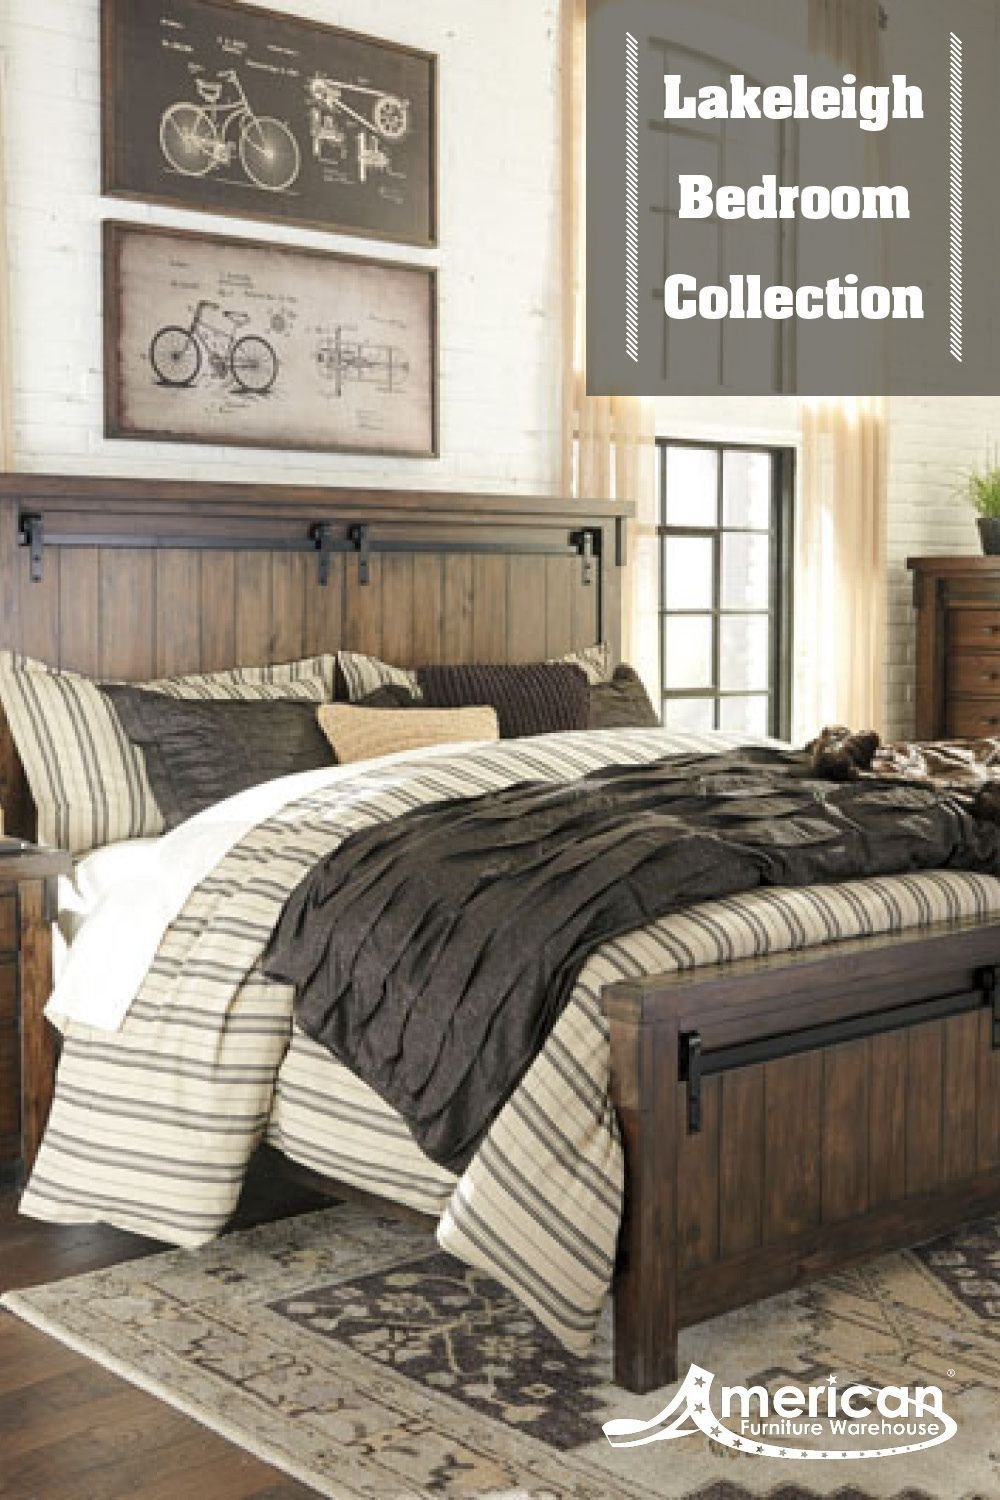 Farmhouse Style Bedroom Set Lovely Lakeleigh 5 Piece Bedroom Set